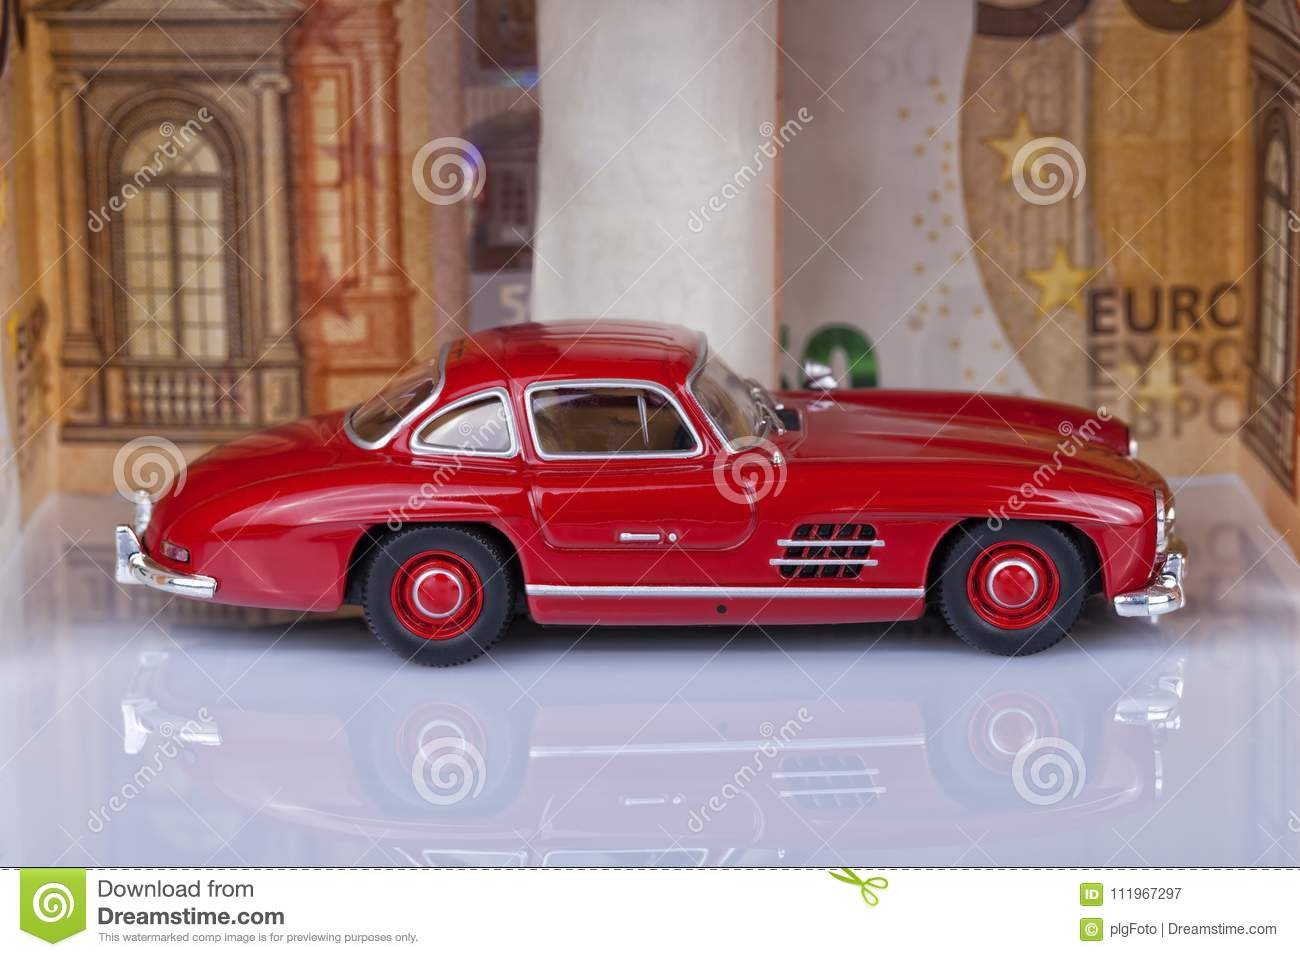 A Classic Sports Car Of The Year 1954 Of Red Color Inside A Gara ...